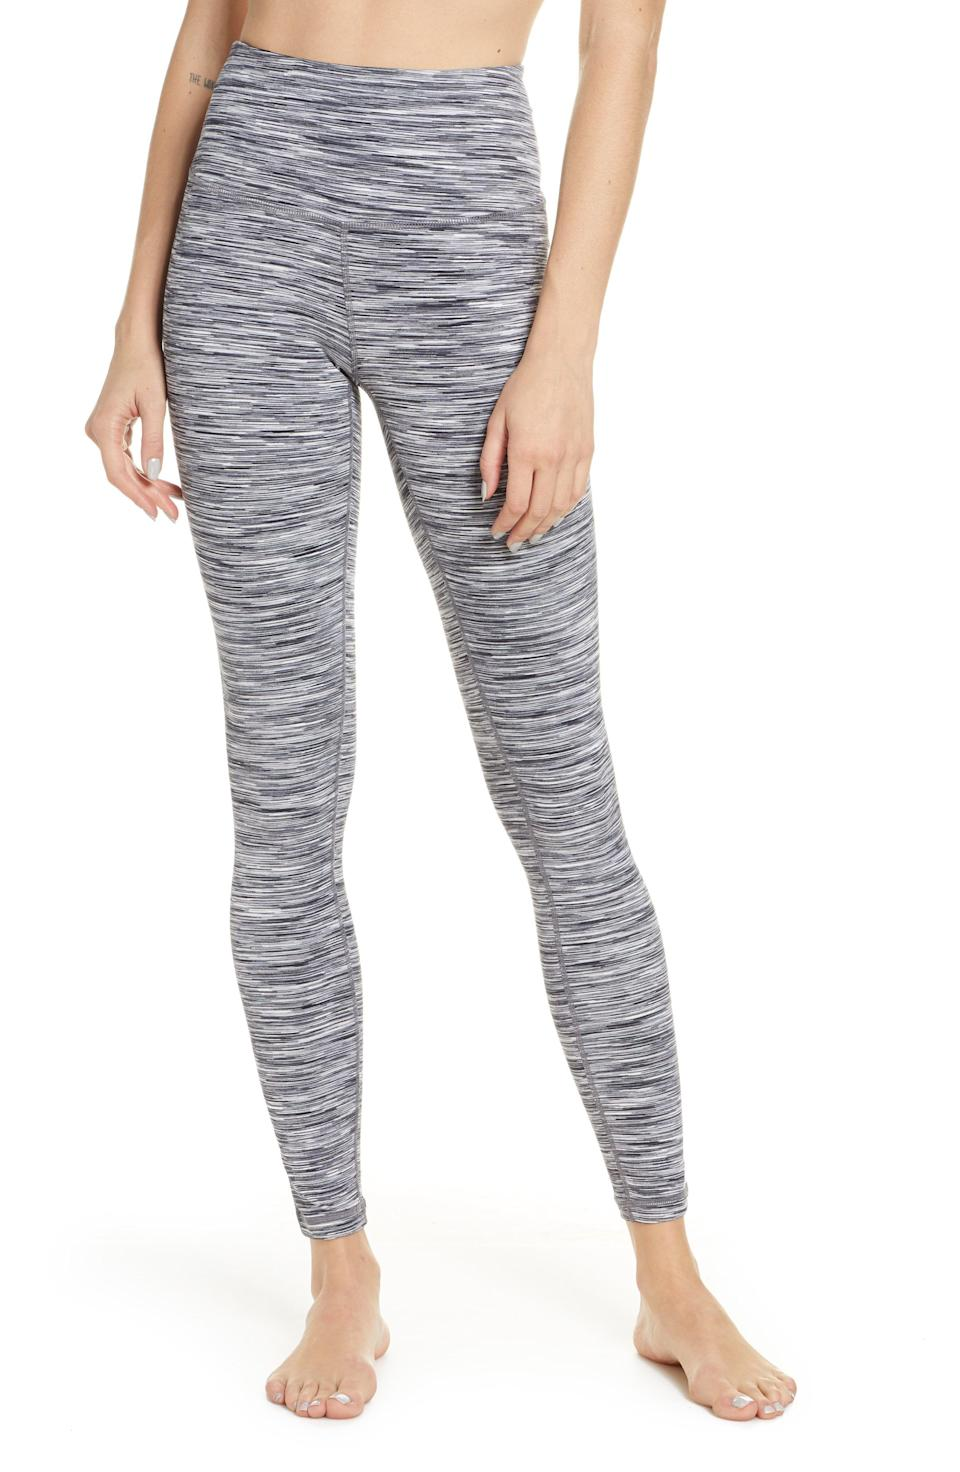 """<p><strong>ZELLA</strong></p><p>nordstrom.com</p><p><a href=""""https://go.redirectingat.com?id=74968X1596630&url=https%3A%2F%2Fwww.nordstrom.com%2Fs%2Fzella-live-in-space-dye-high-waist-leggings%2F5459391&sref=https%3A%2F%2Fwww.redbookmag.com%2Flife%2Fg34807129%2Fnordstrom-black-friday-cyber-monday-deals-2020%2F"""" rel=""""nofollow noopener"""" target=""""_blank"""" data-ylk=""""slk:Shop Now"""" class=""""link rapid-noclick-resp"""">Shop Now</a></p><p><strong><del>$65</del> $24.37 (62% off)</strong></p><p>Zella leggings are a customer fave, and these discounted ones have some pretty impressive reviews. </p>"""